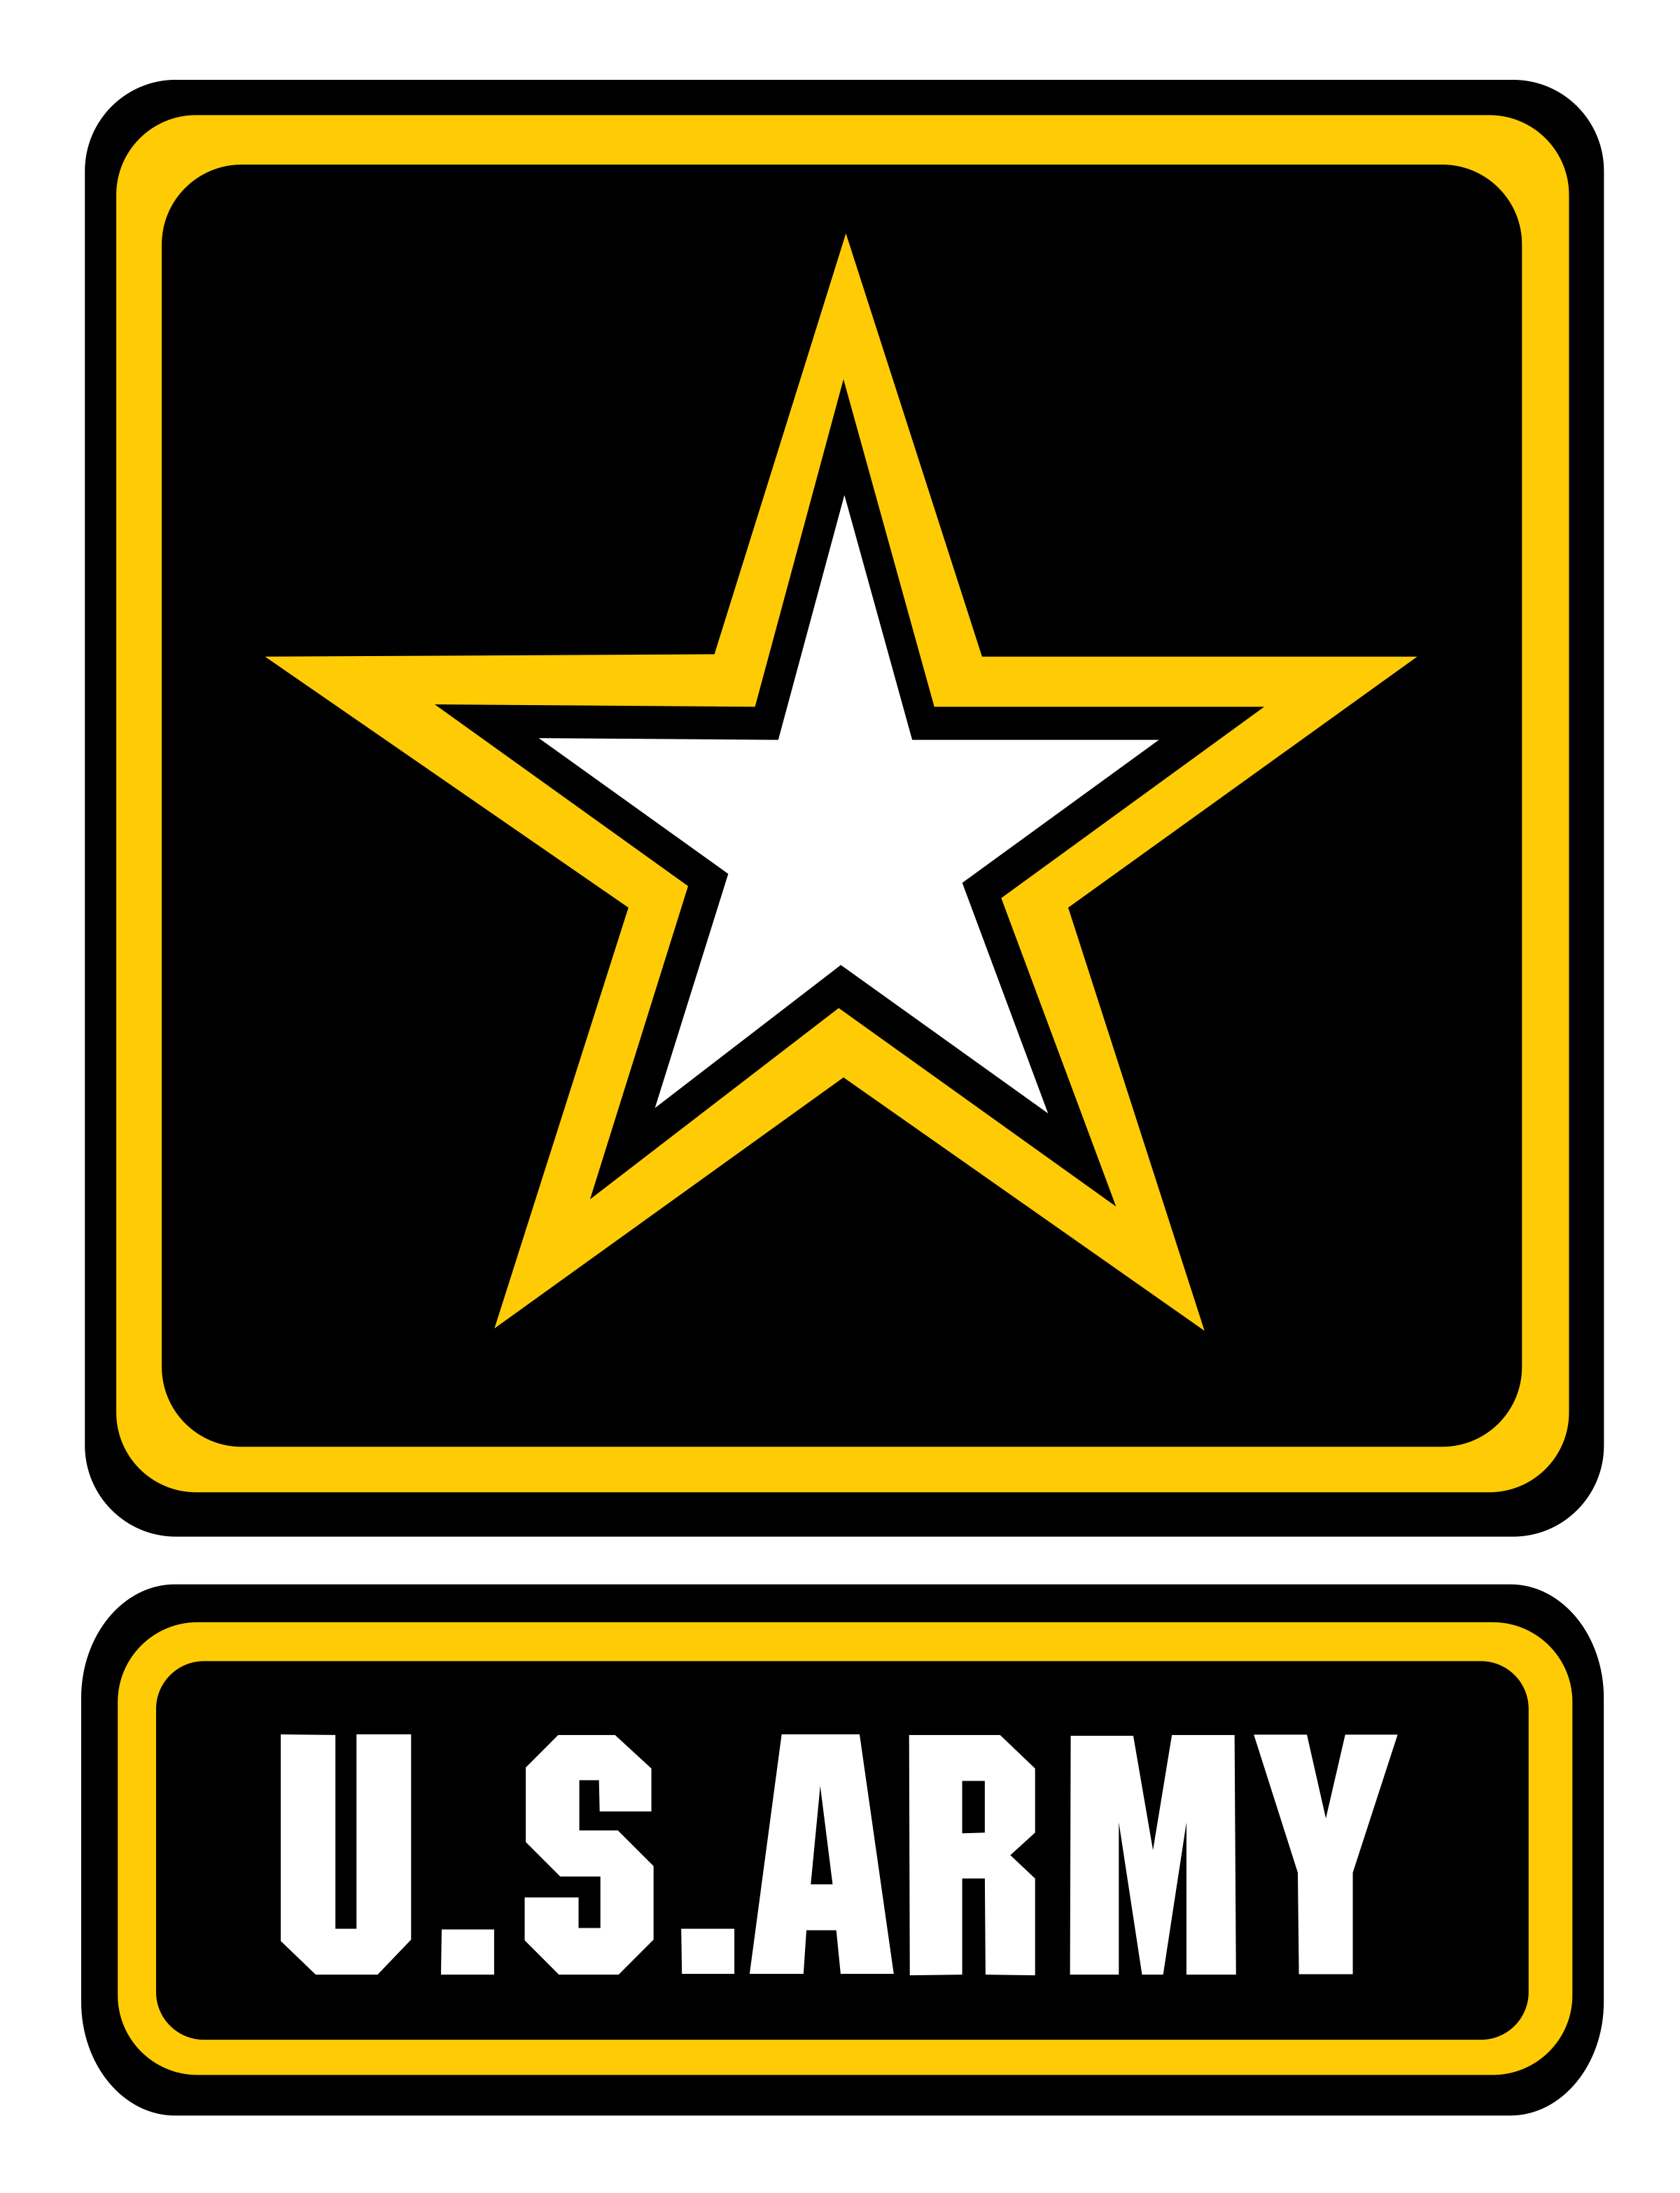 image library stock U s army clipart. United states logo national.